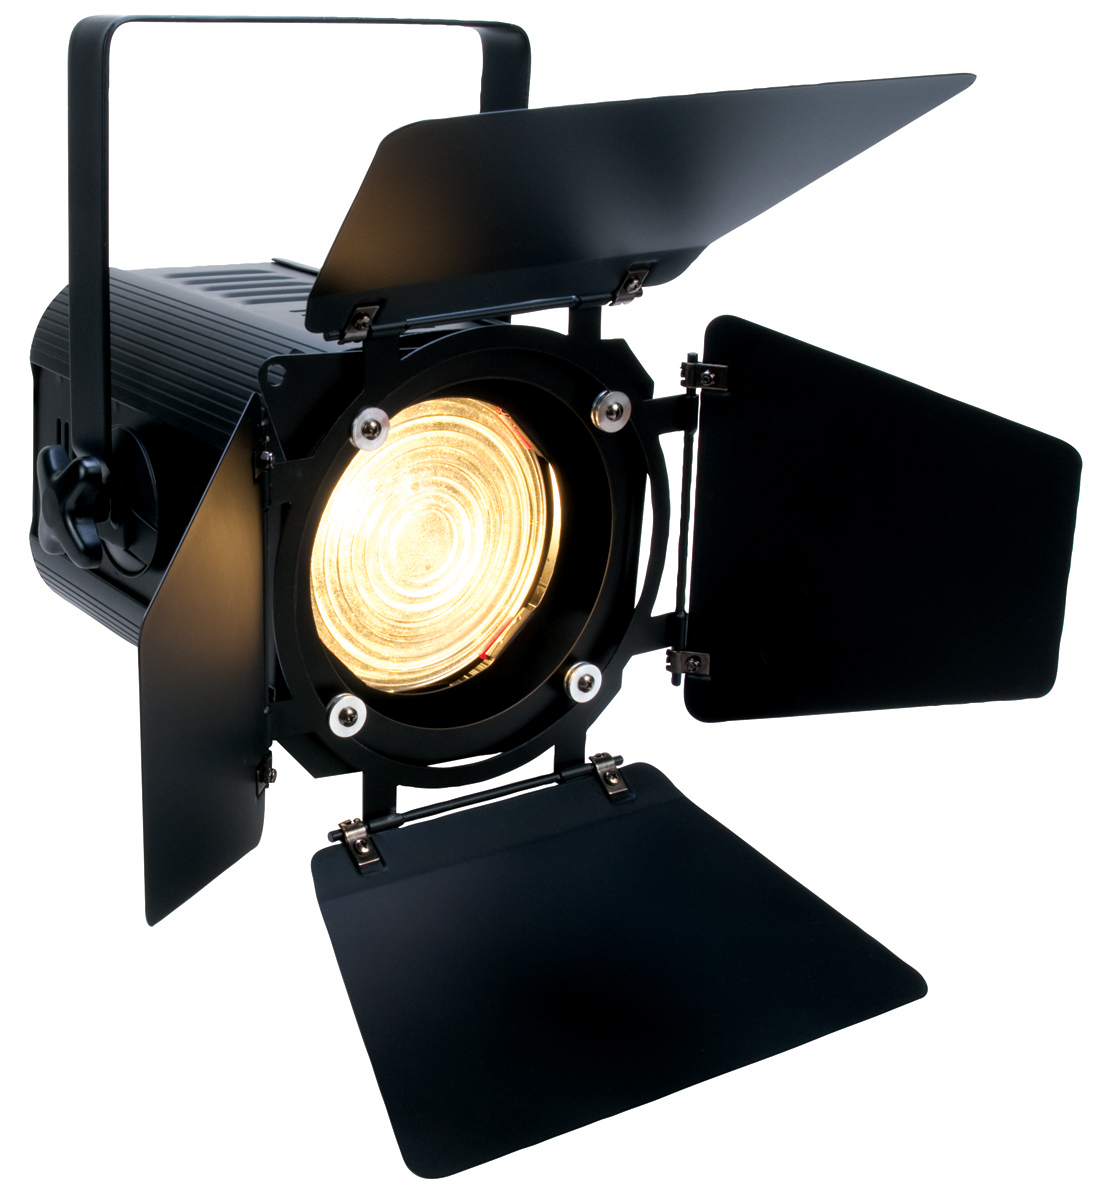 Elation ELED FRESNEL 150 4000k 80 CRI 150Watts Bridgelux LED Engine Stage Lighting